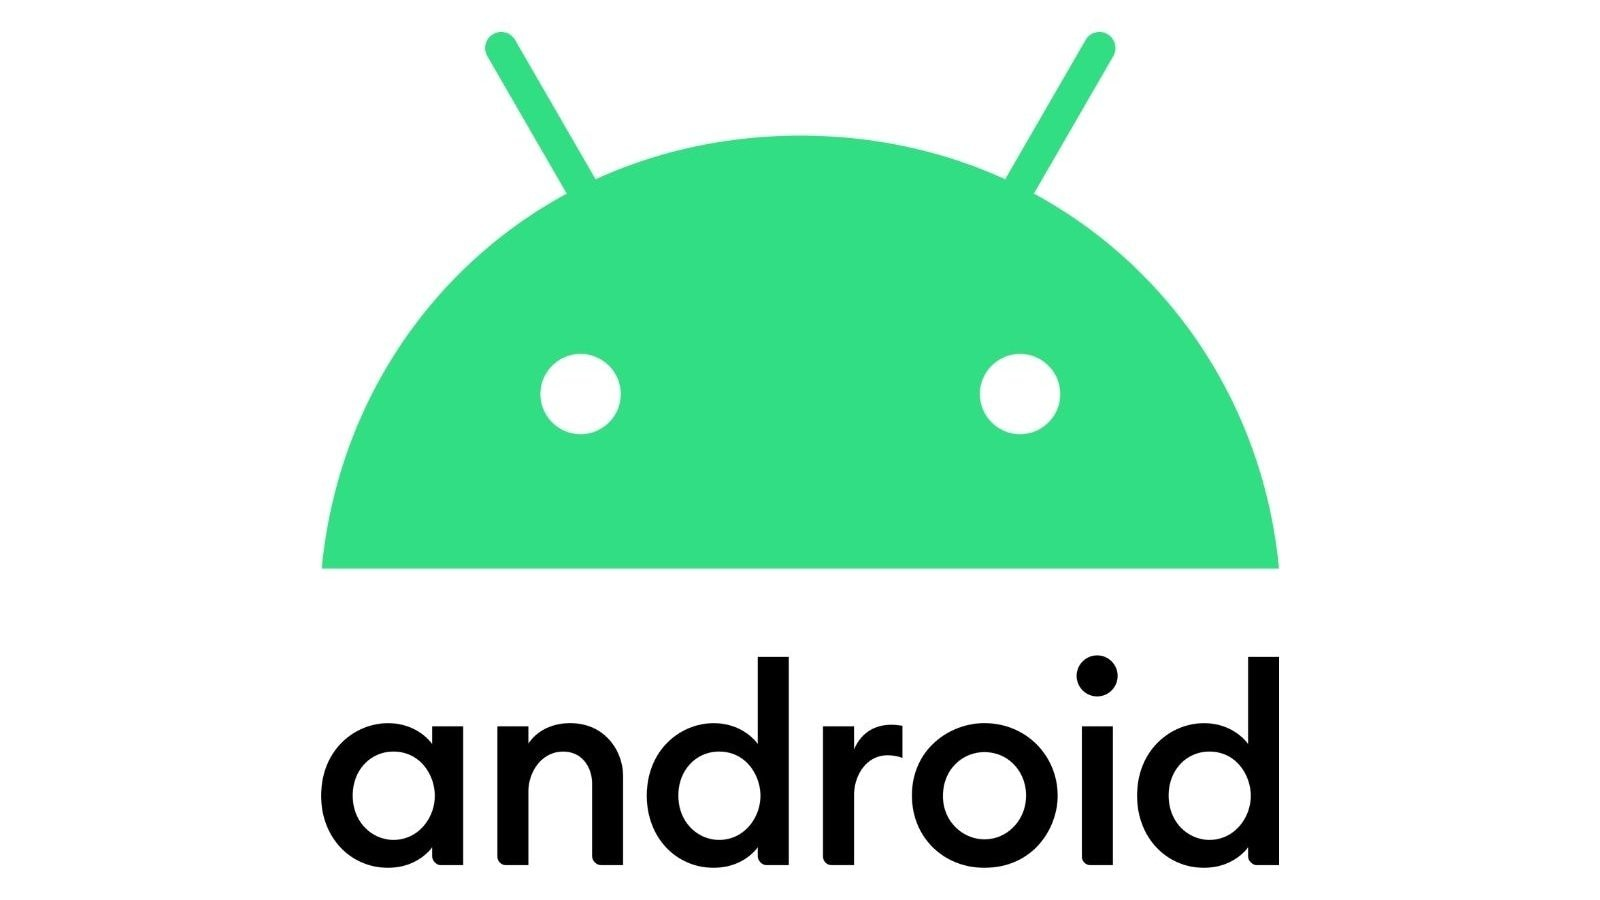 Android Phone Sending To Many Ads? How To Get Rid Of Ads On Any Android Device